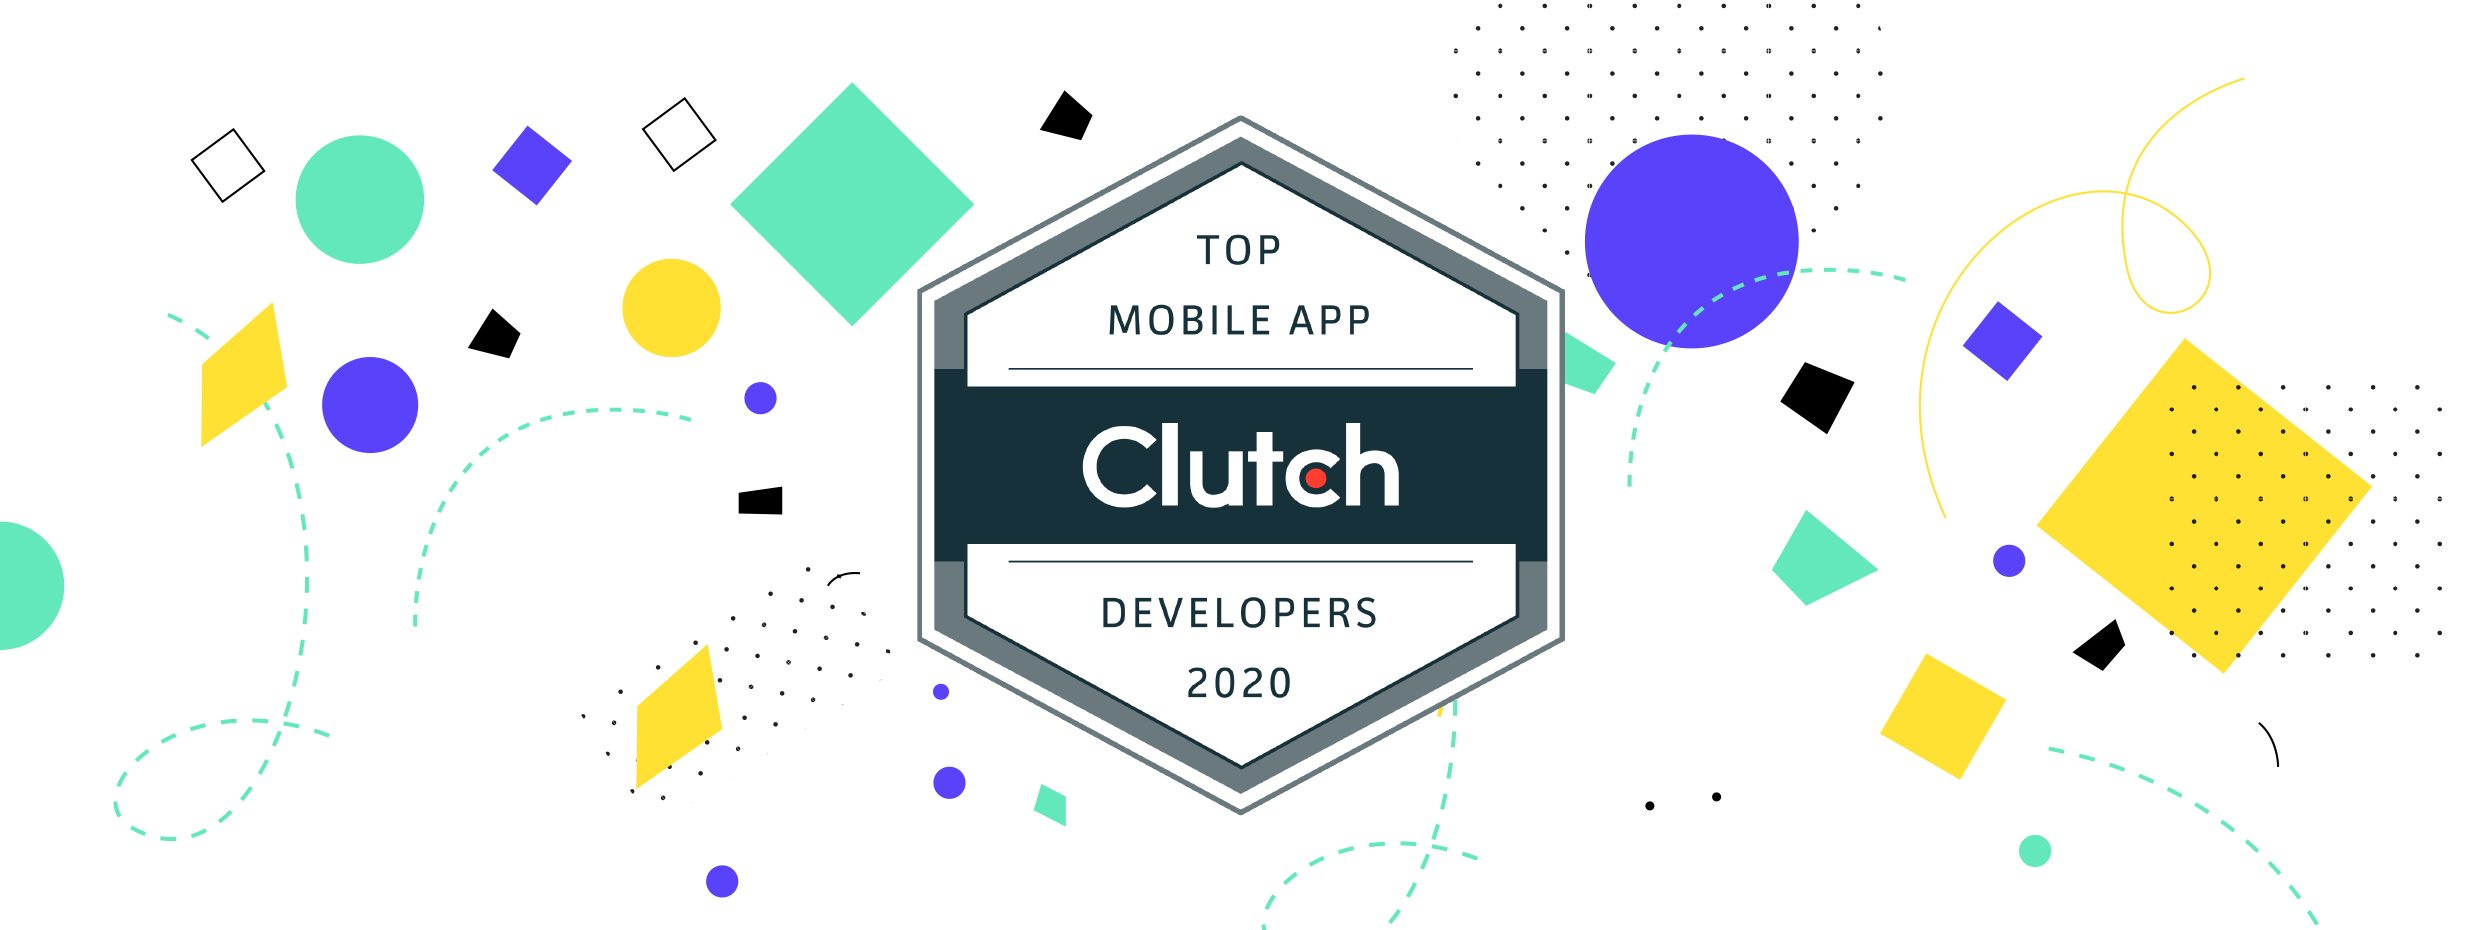 Clutch's Top Mobile Developers 2020 badge